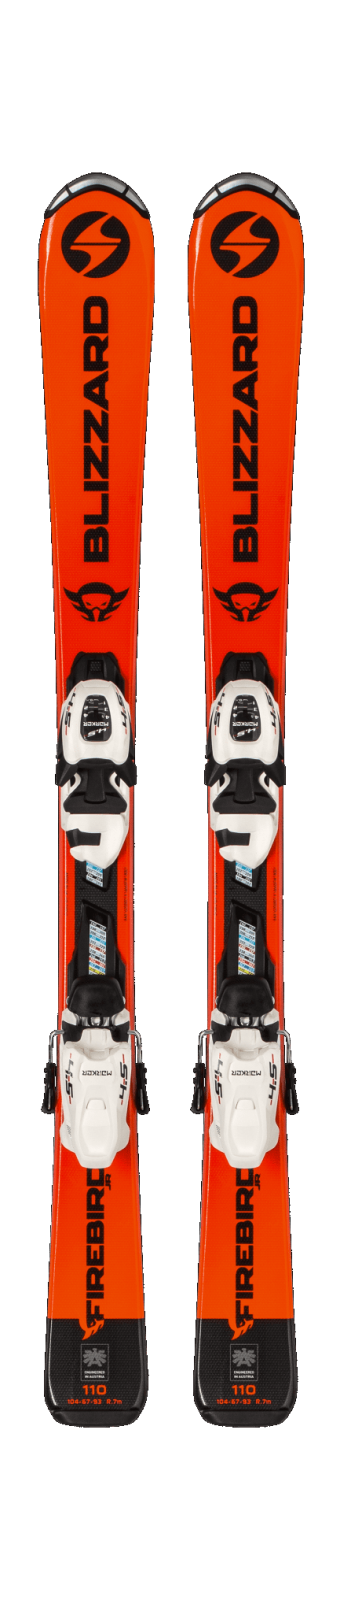 2020 Blizzard Firebird Jr Youth Skis w/ FDT 7.0 Bindings